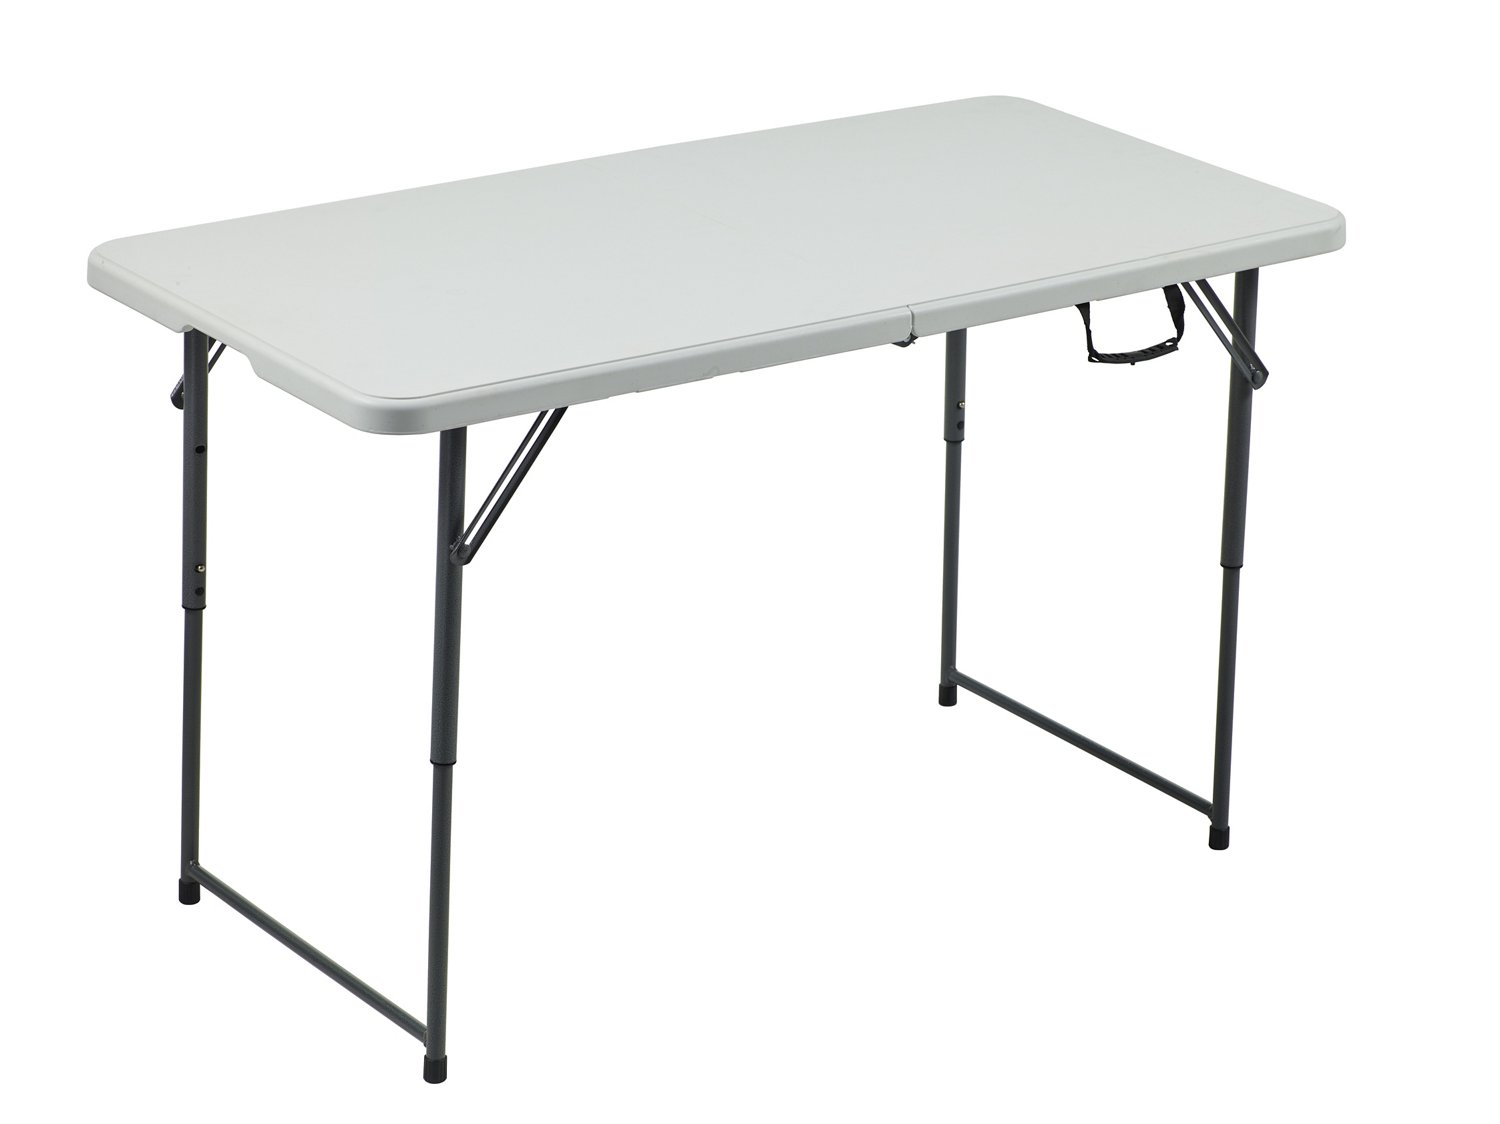 folding tables small folding tables 8 folding tables fold out